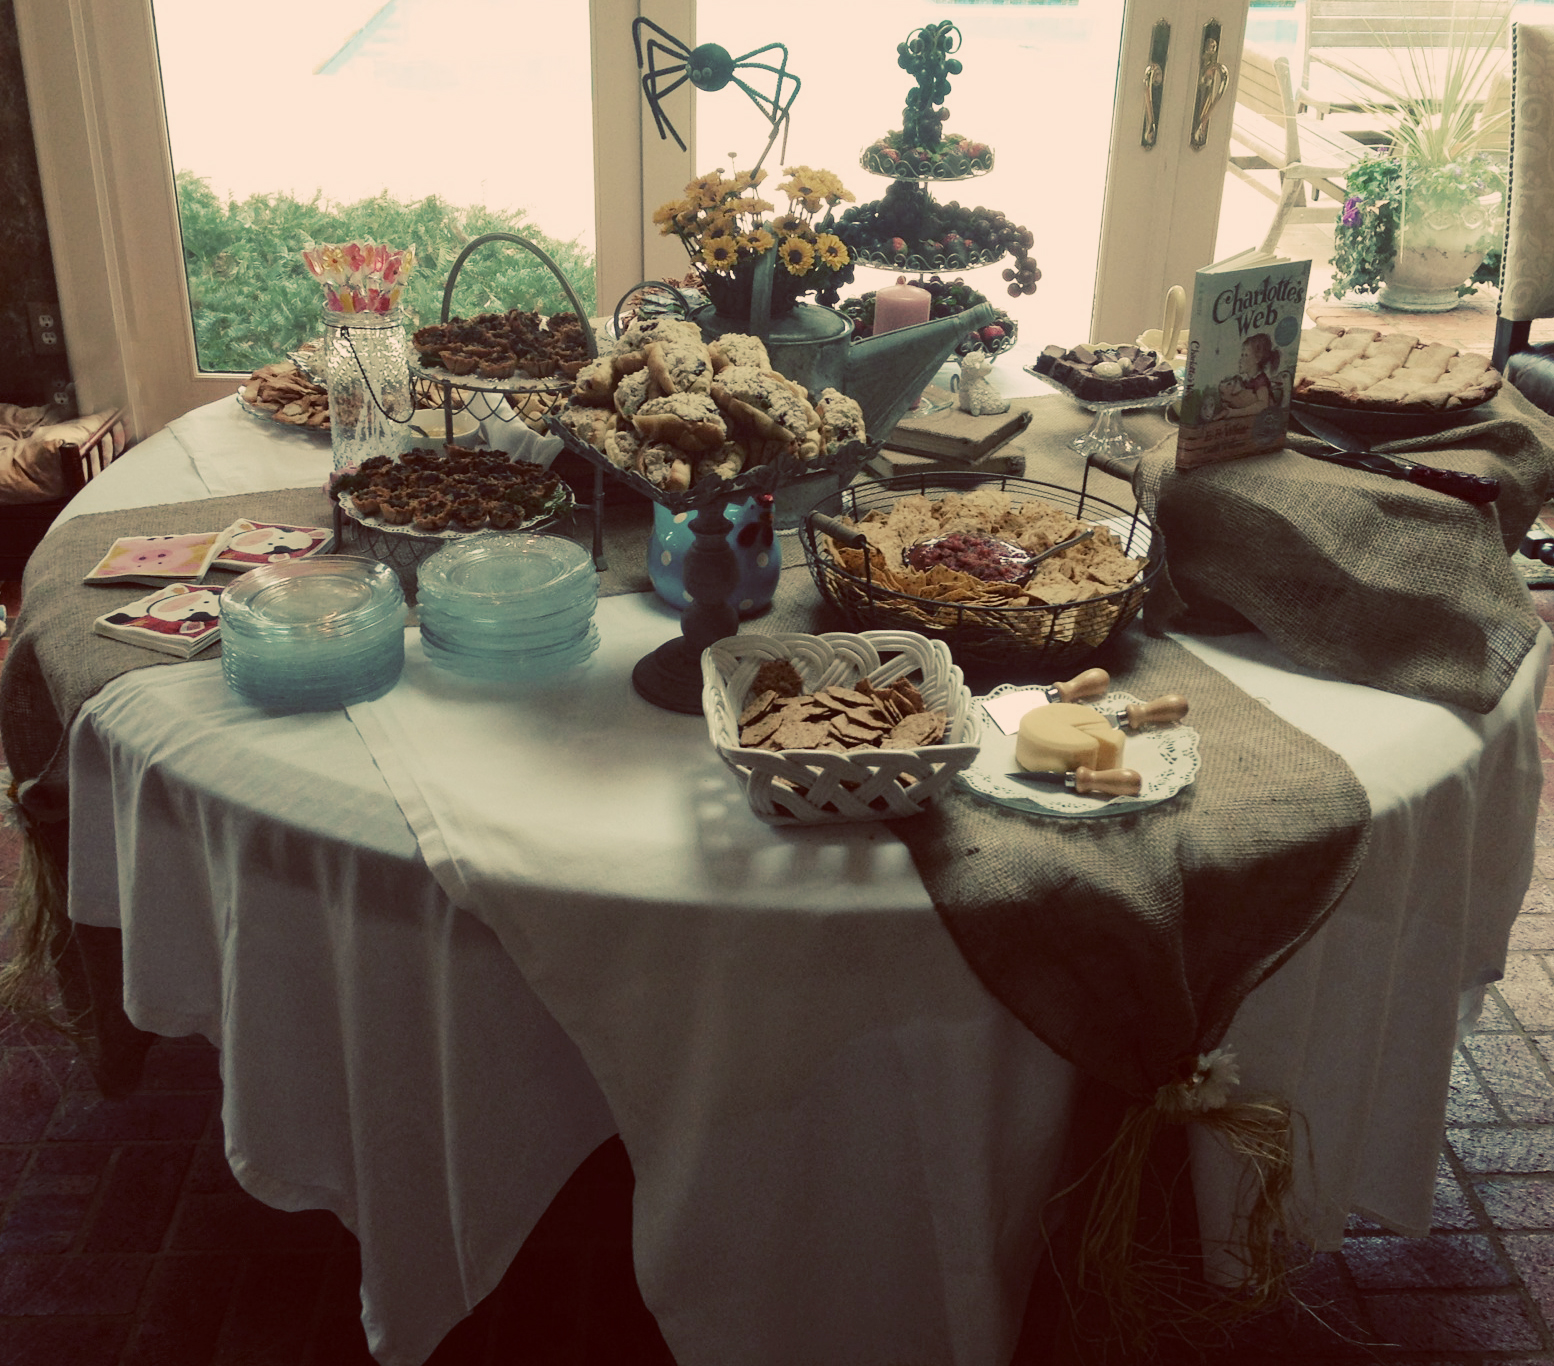 Sail South Home: Charlotte's Web Baby Shower